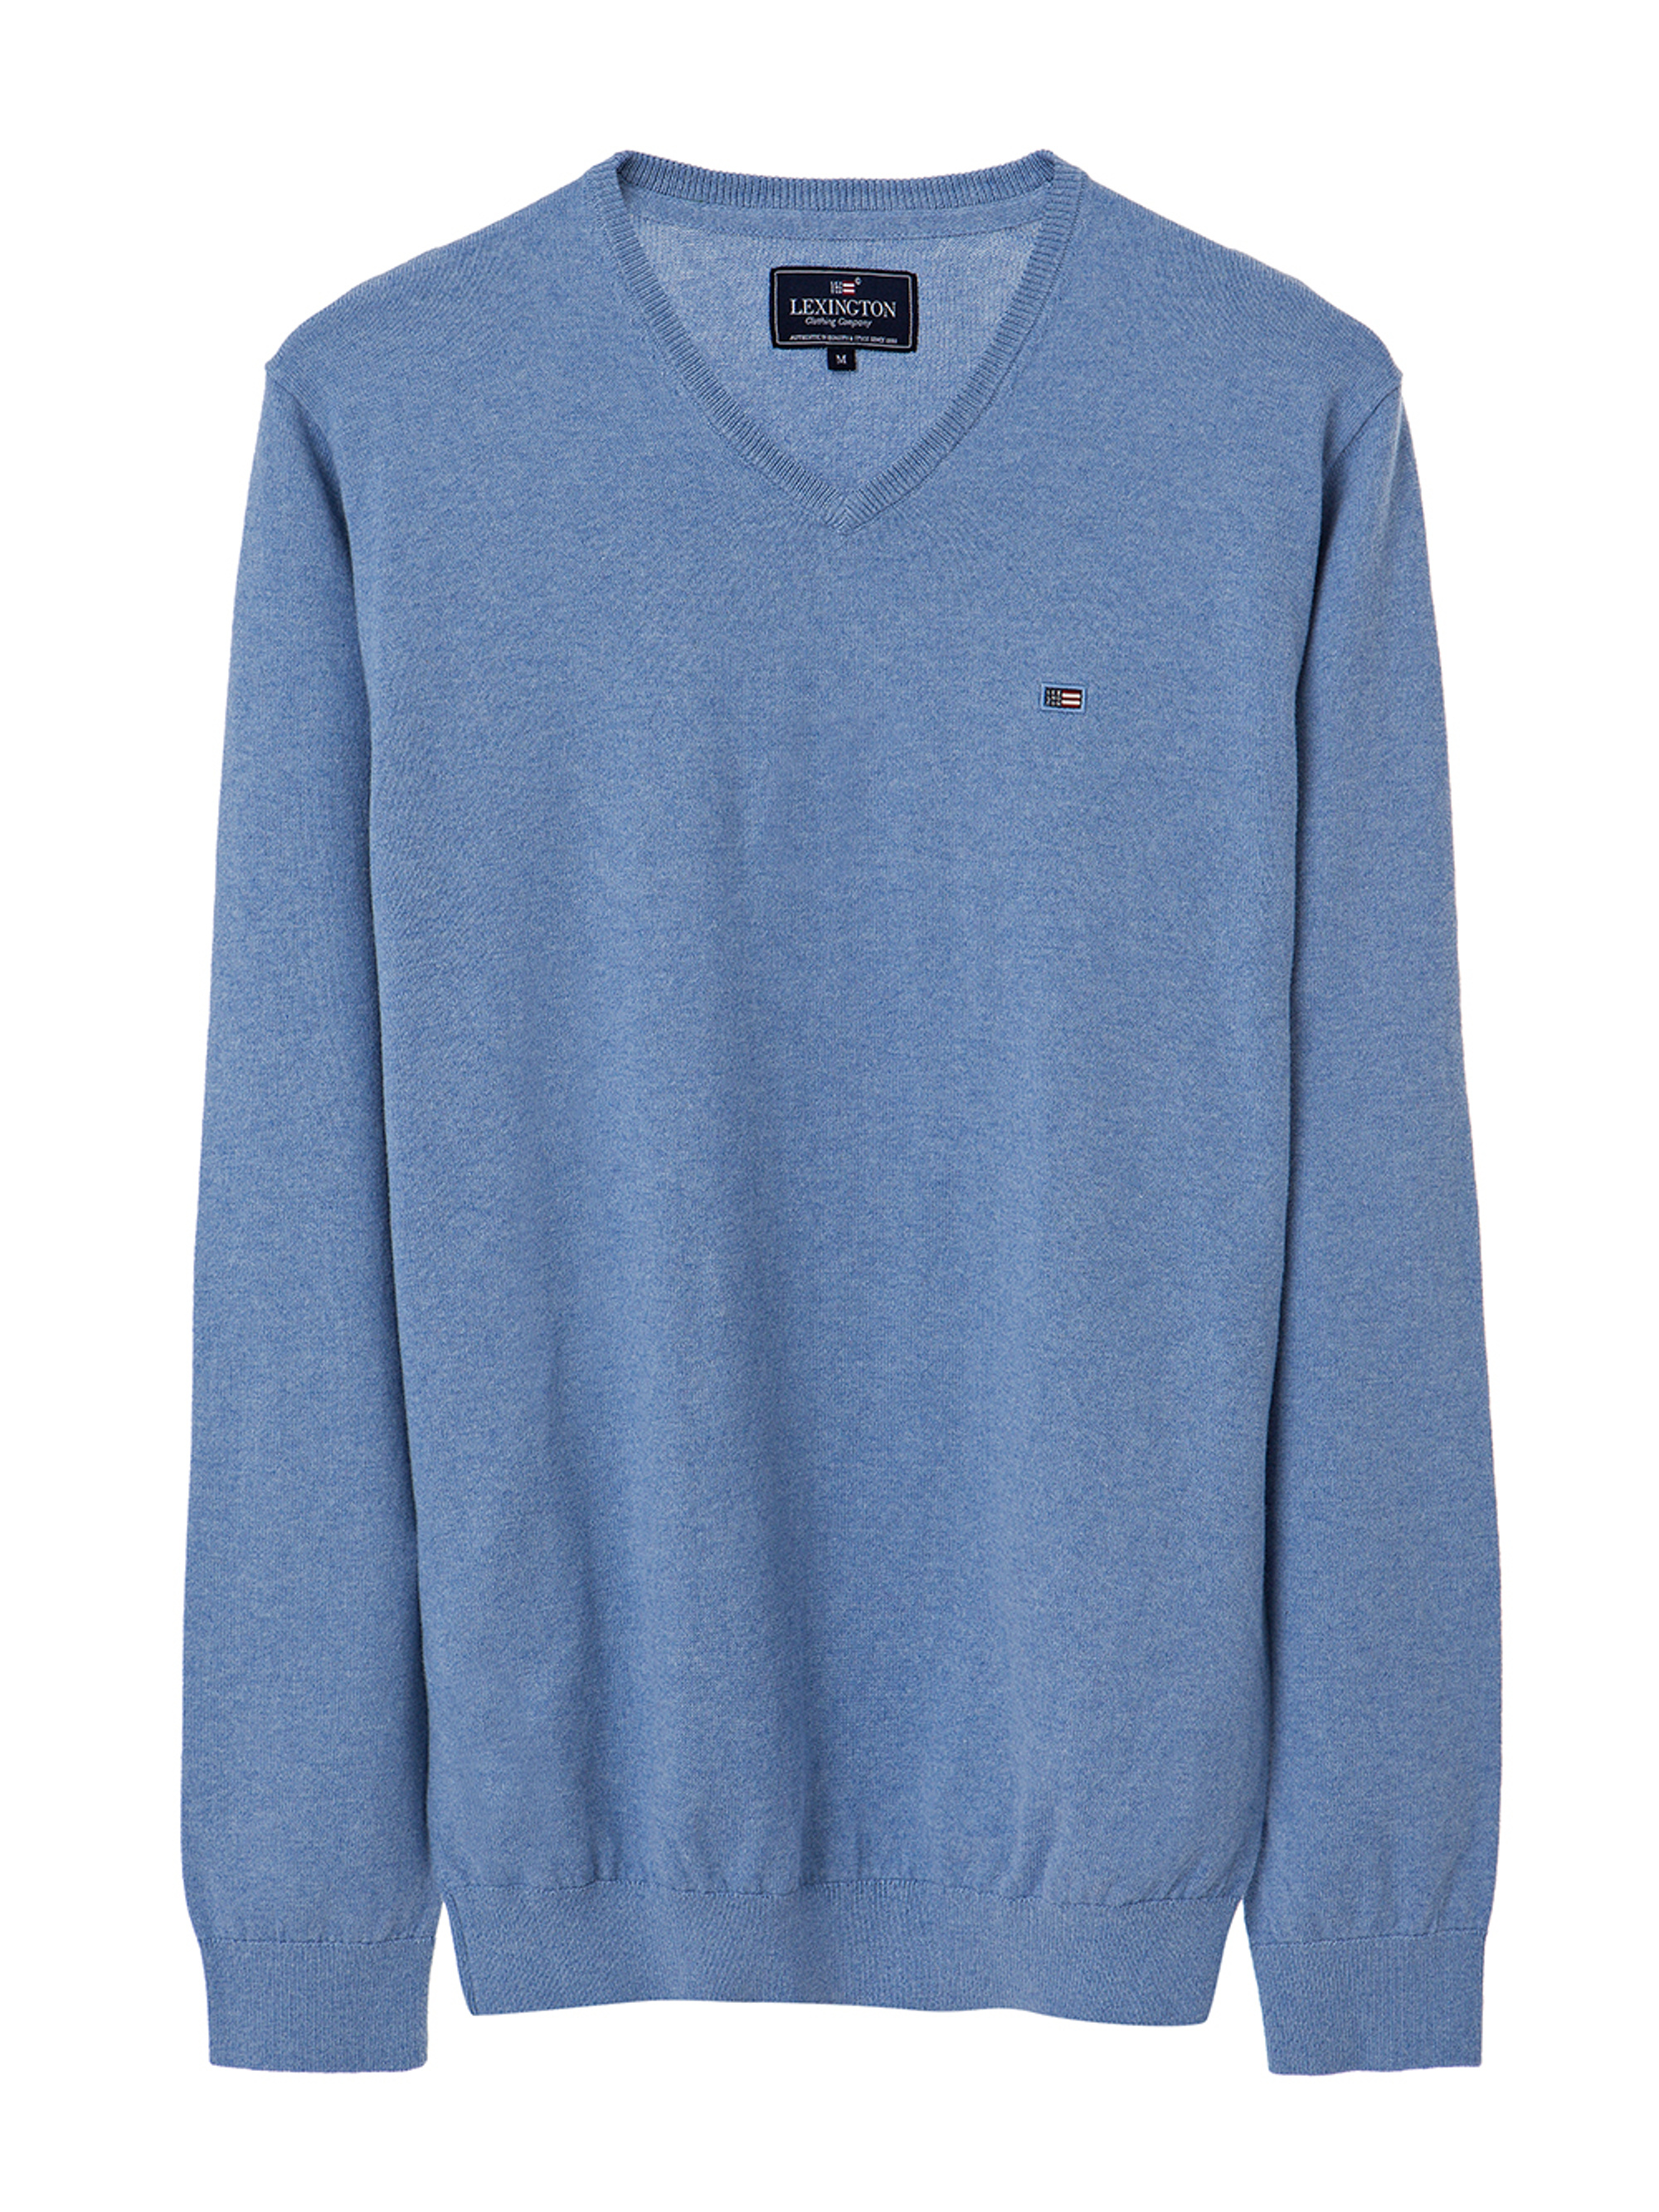 Nicholas V-Neck Sweater, Light Blue